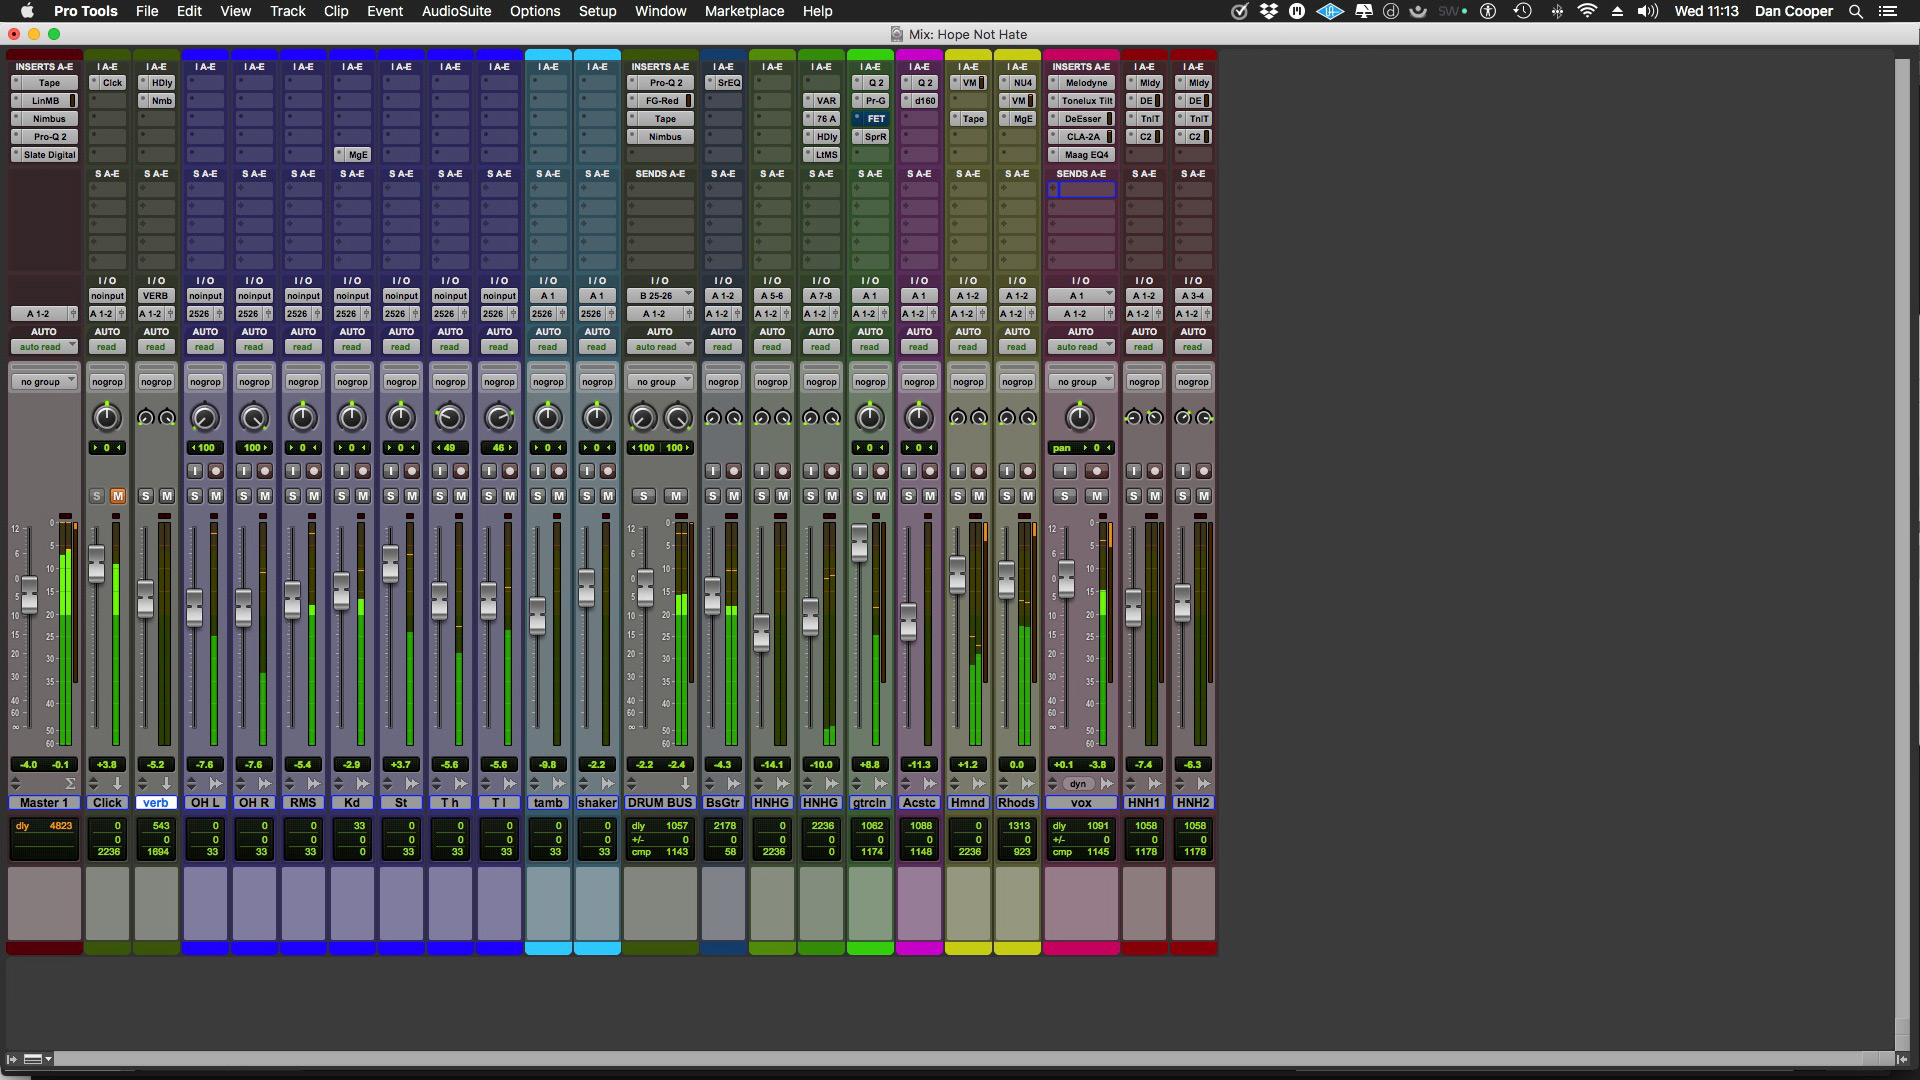 Mockup showing a mixture of narrow & wide tracks in the Pro Tools mix window